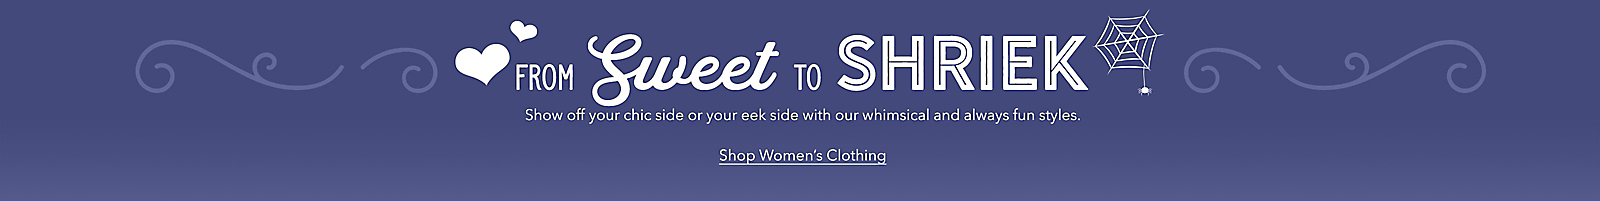 From Sweet to Shriek, shop Women's Clothing